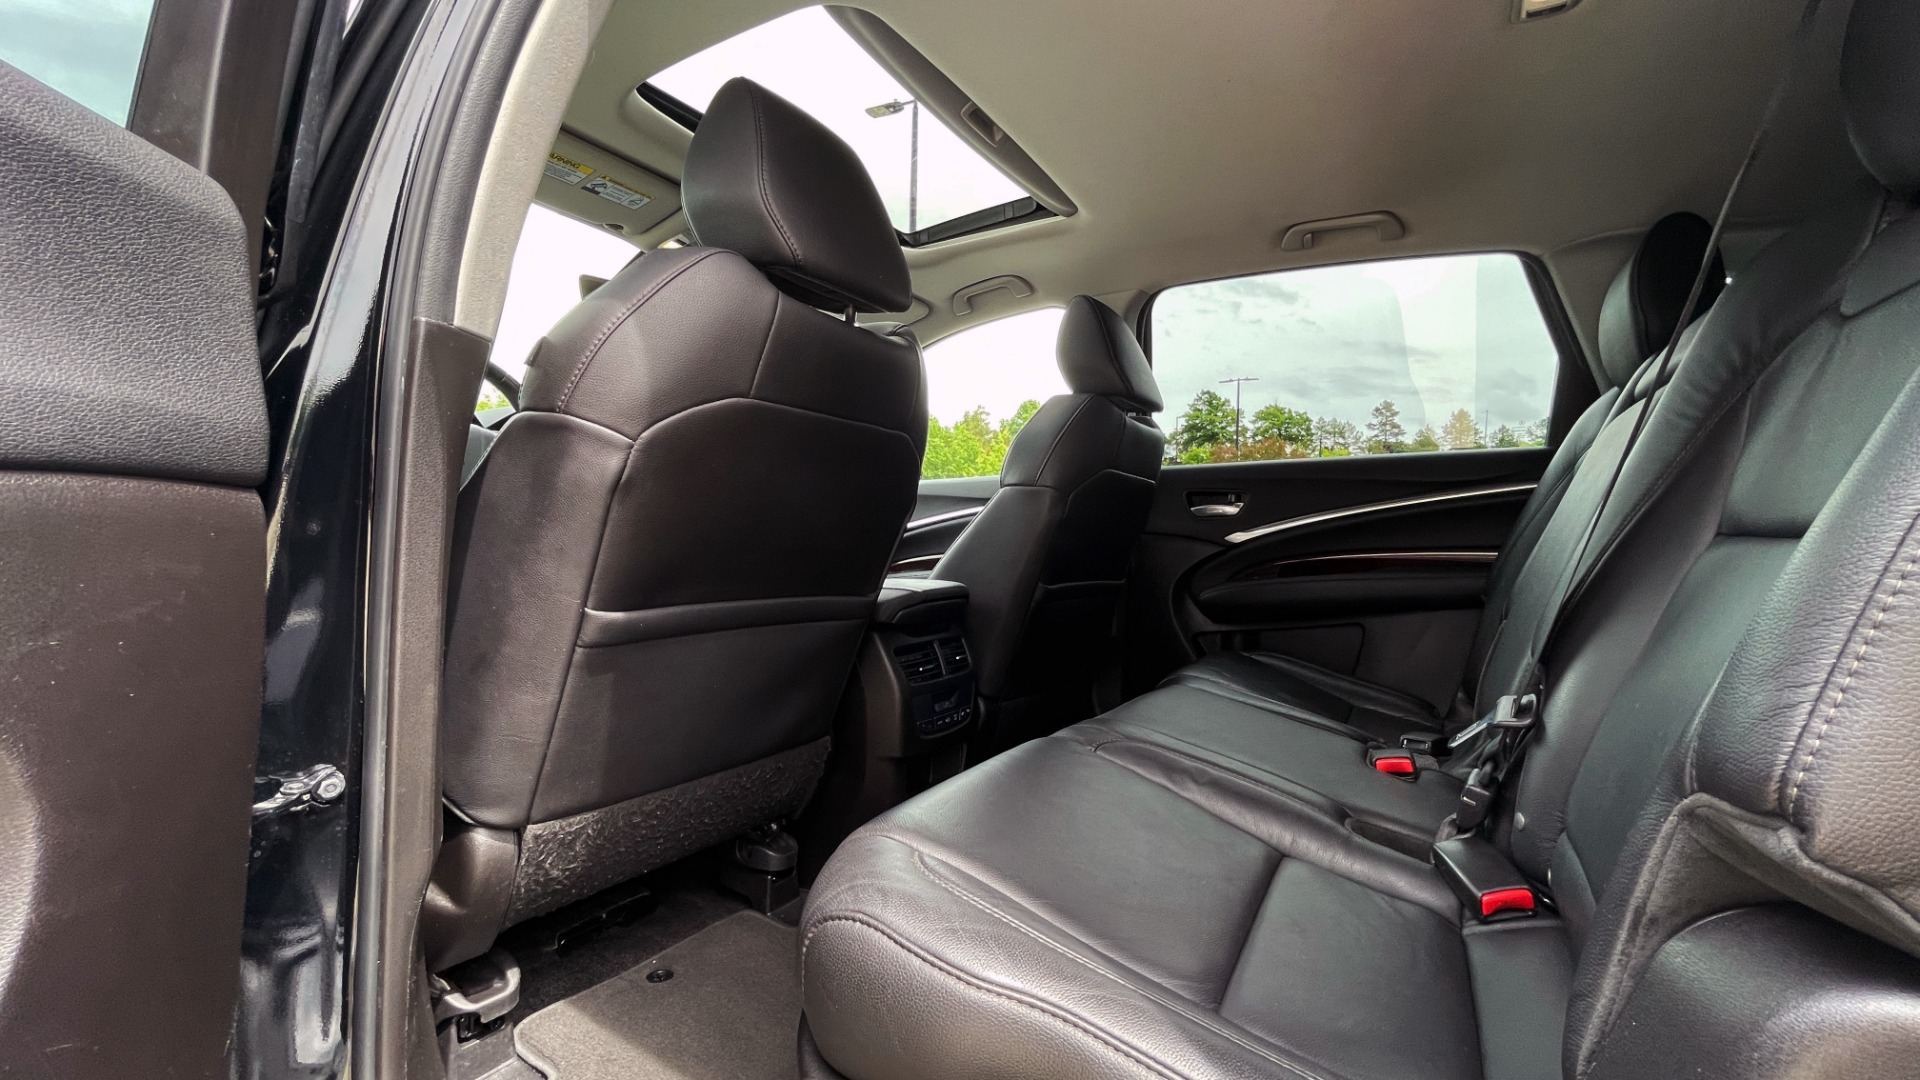 Used 2016 Acura MDX 3.5L V6 / AUTO / LEATHER / NAV / SUNROOF / 3-ROW / REARVIEW for sale $21,900 at Formula Imports in Charlotte NC 28227 76